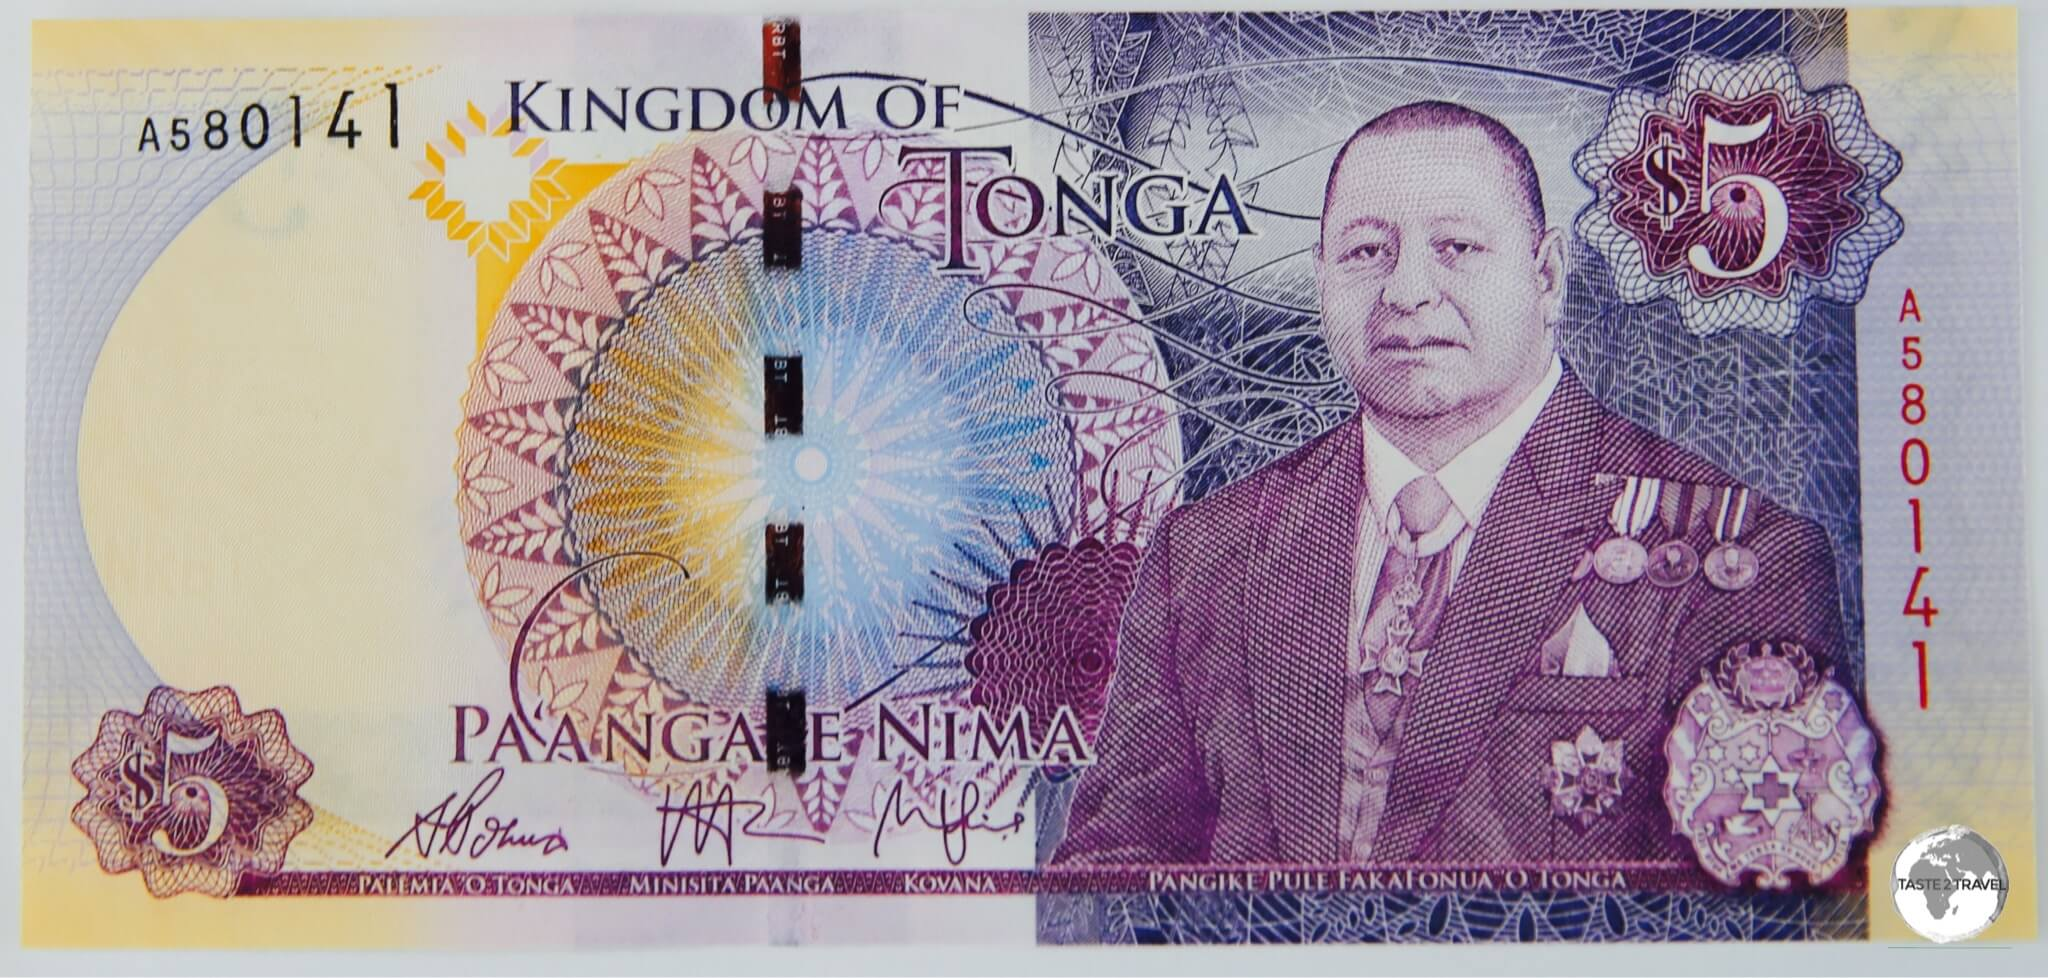 All bank notes in Tonga feature King Tupou VI.